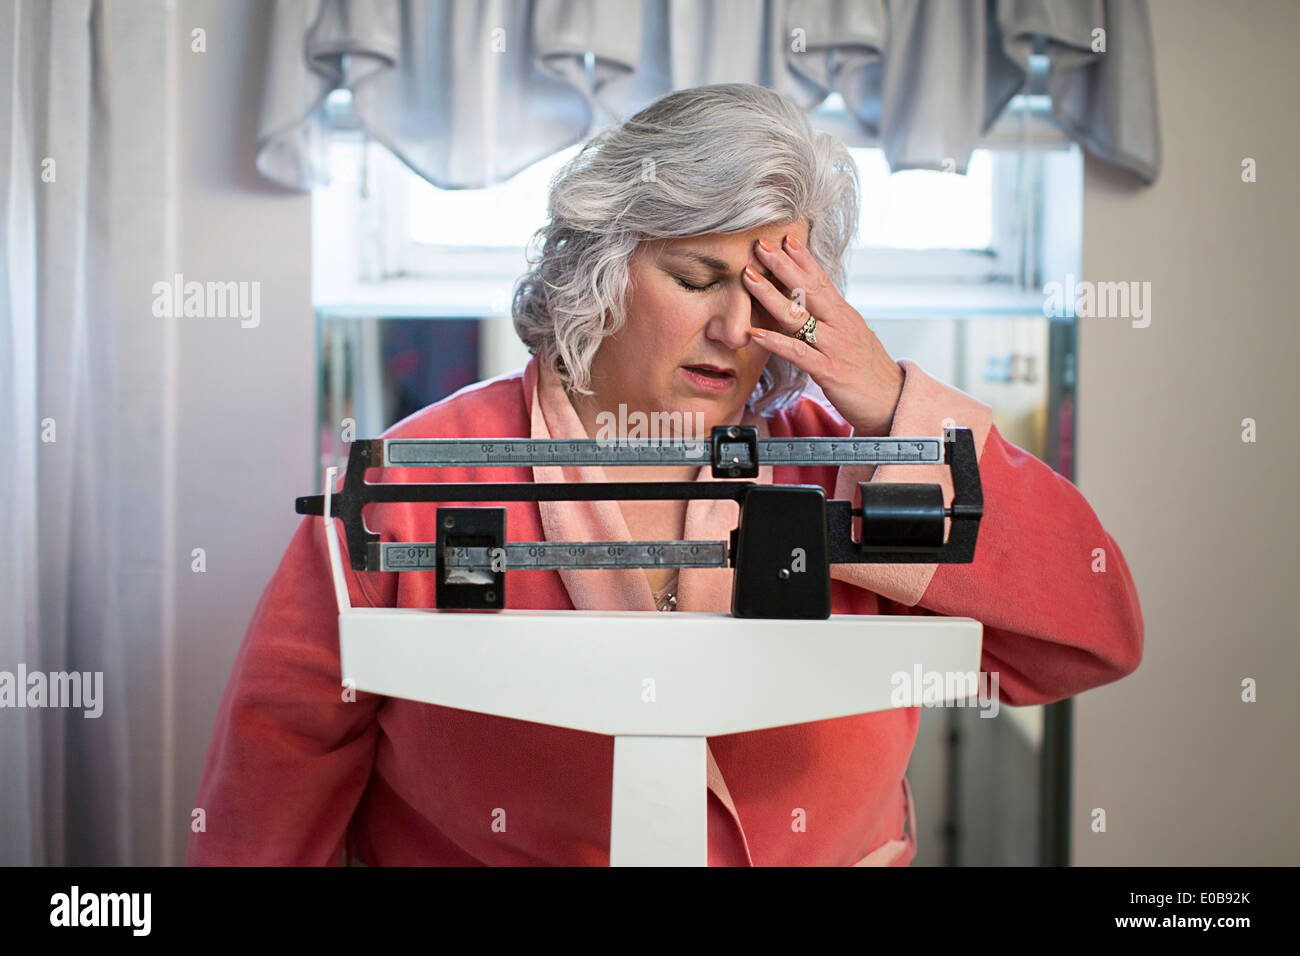 Unhappy mature woman on bathroom weighing scales - Stock Image